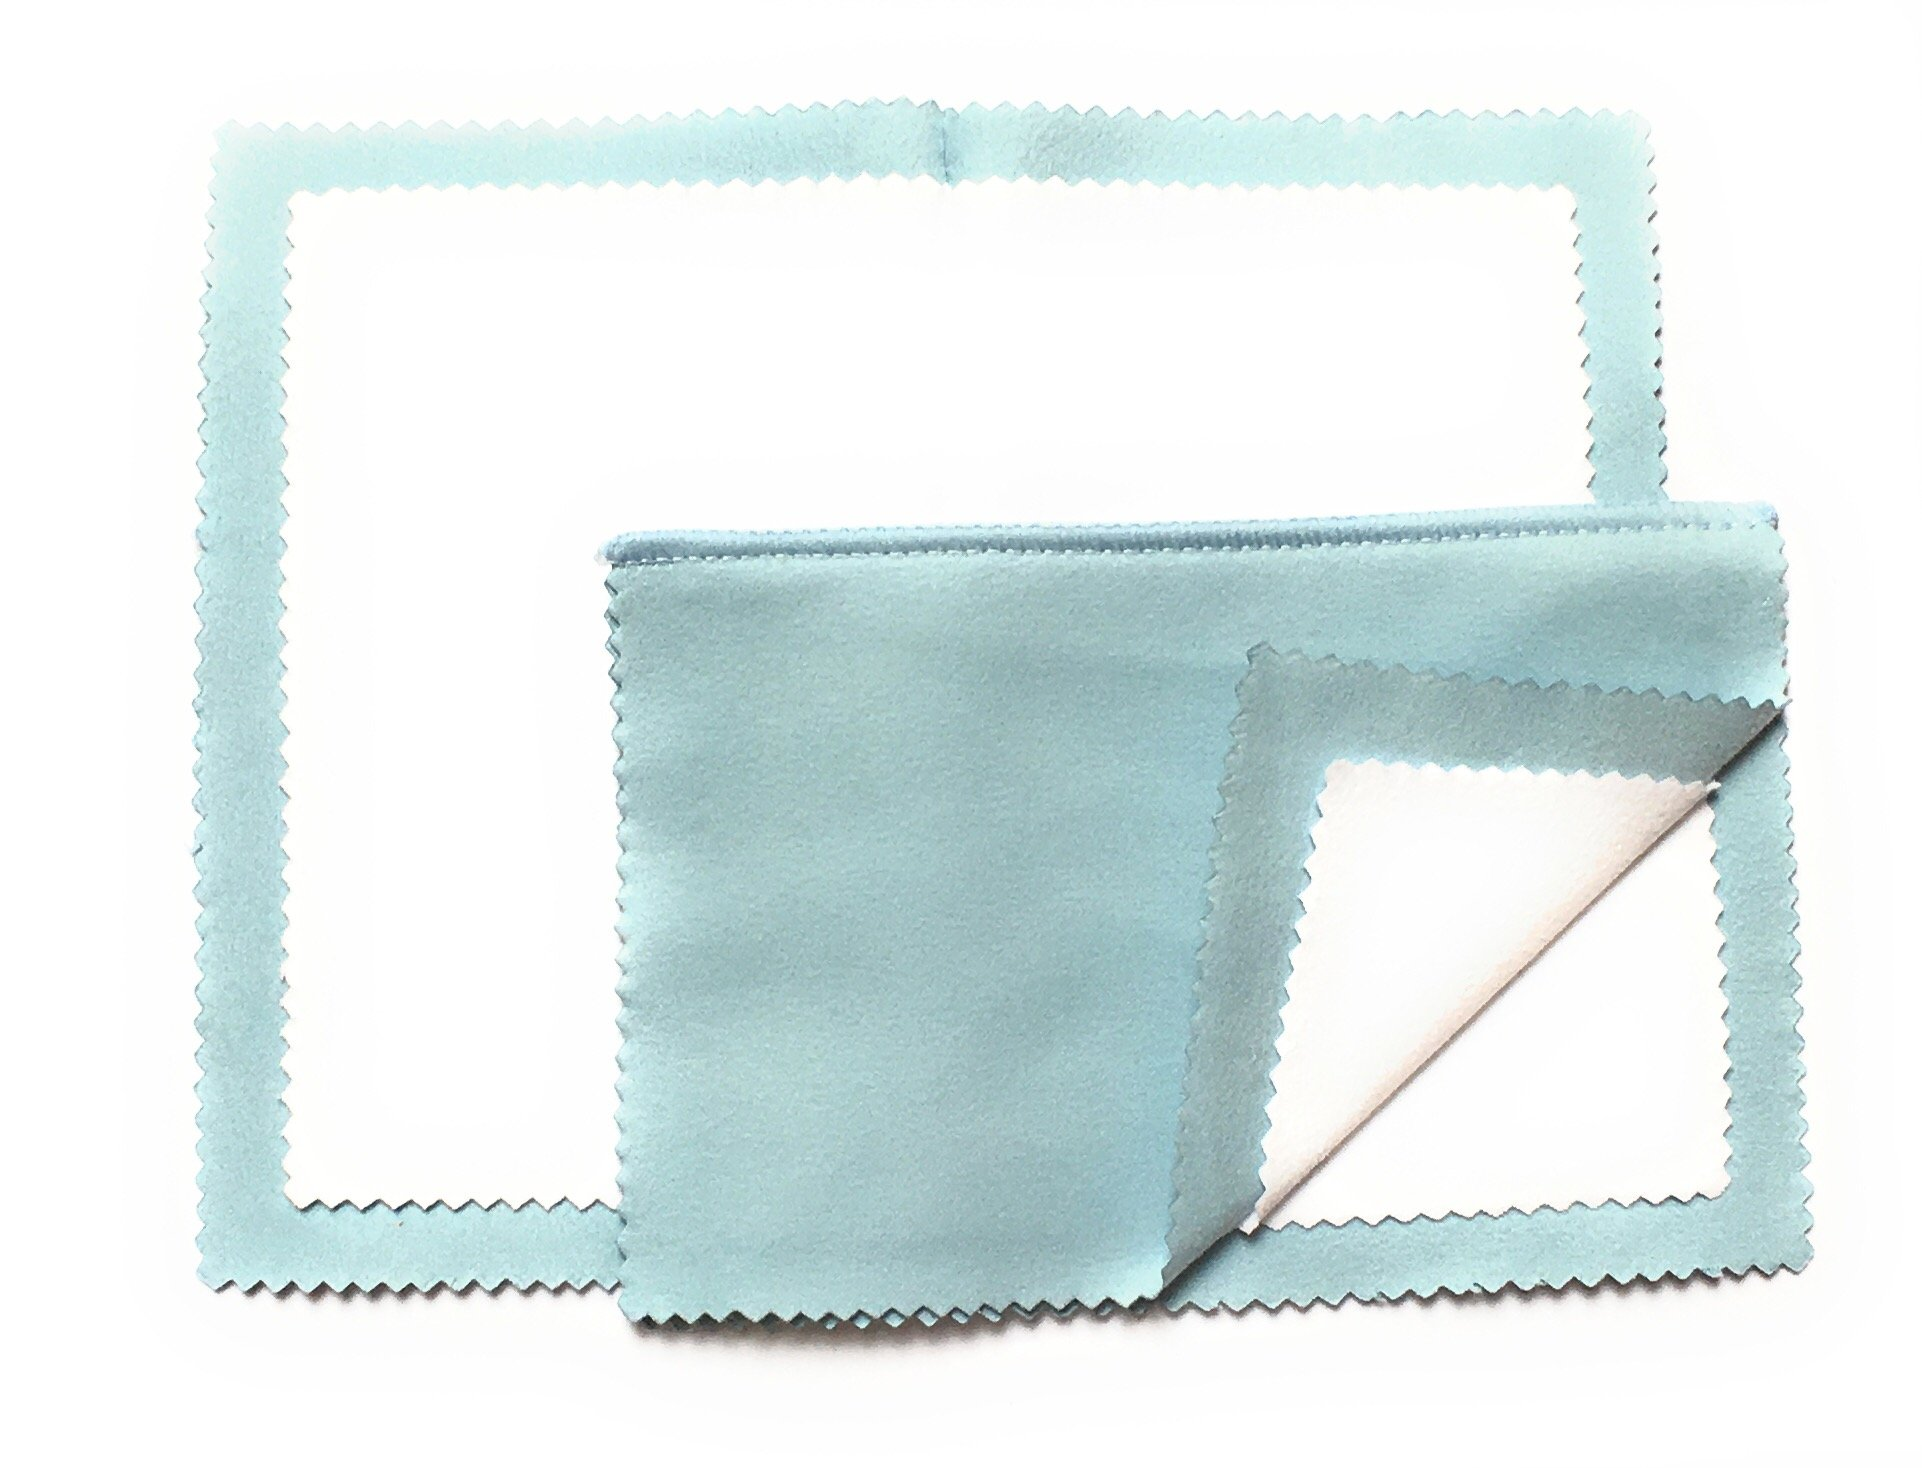 BOSTON EMPORIUM Jewelry Polishing Cloth - 4 Ply Travel Size Microfiber Cloth for Cleaning Buffing Tarnish Removal and Polishing Gold and Silver Jewelry (Light Blue 2 Pk)